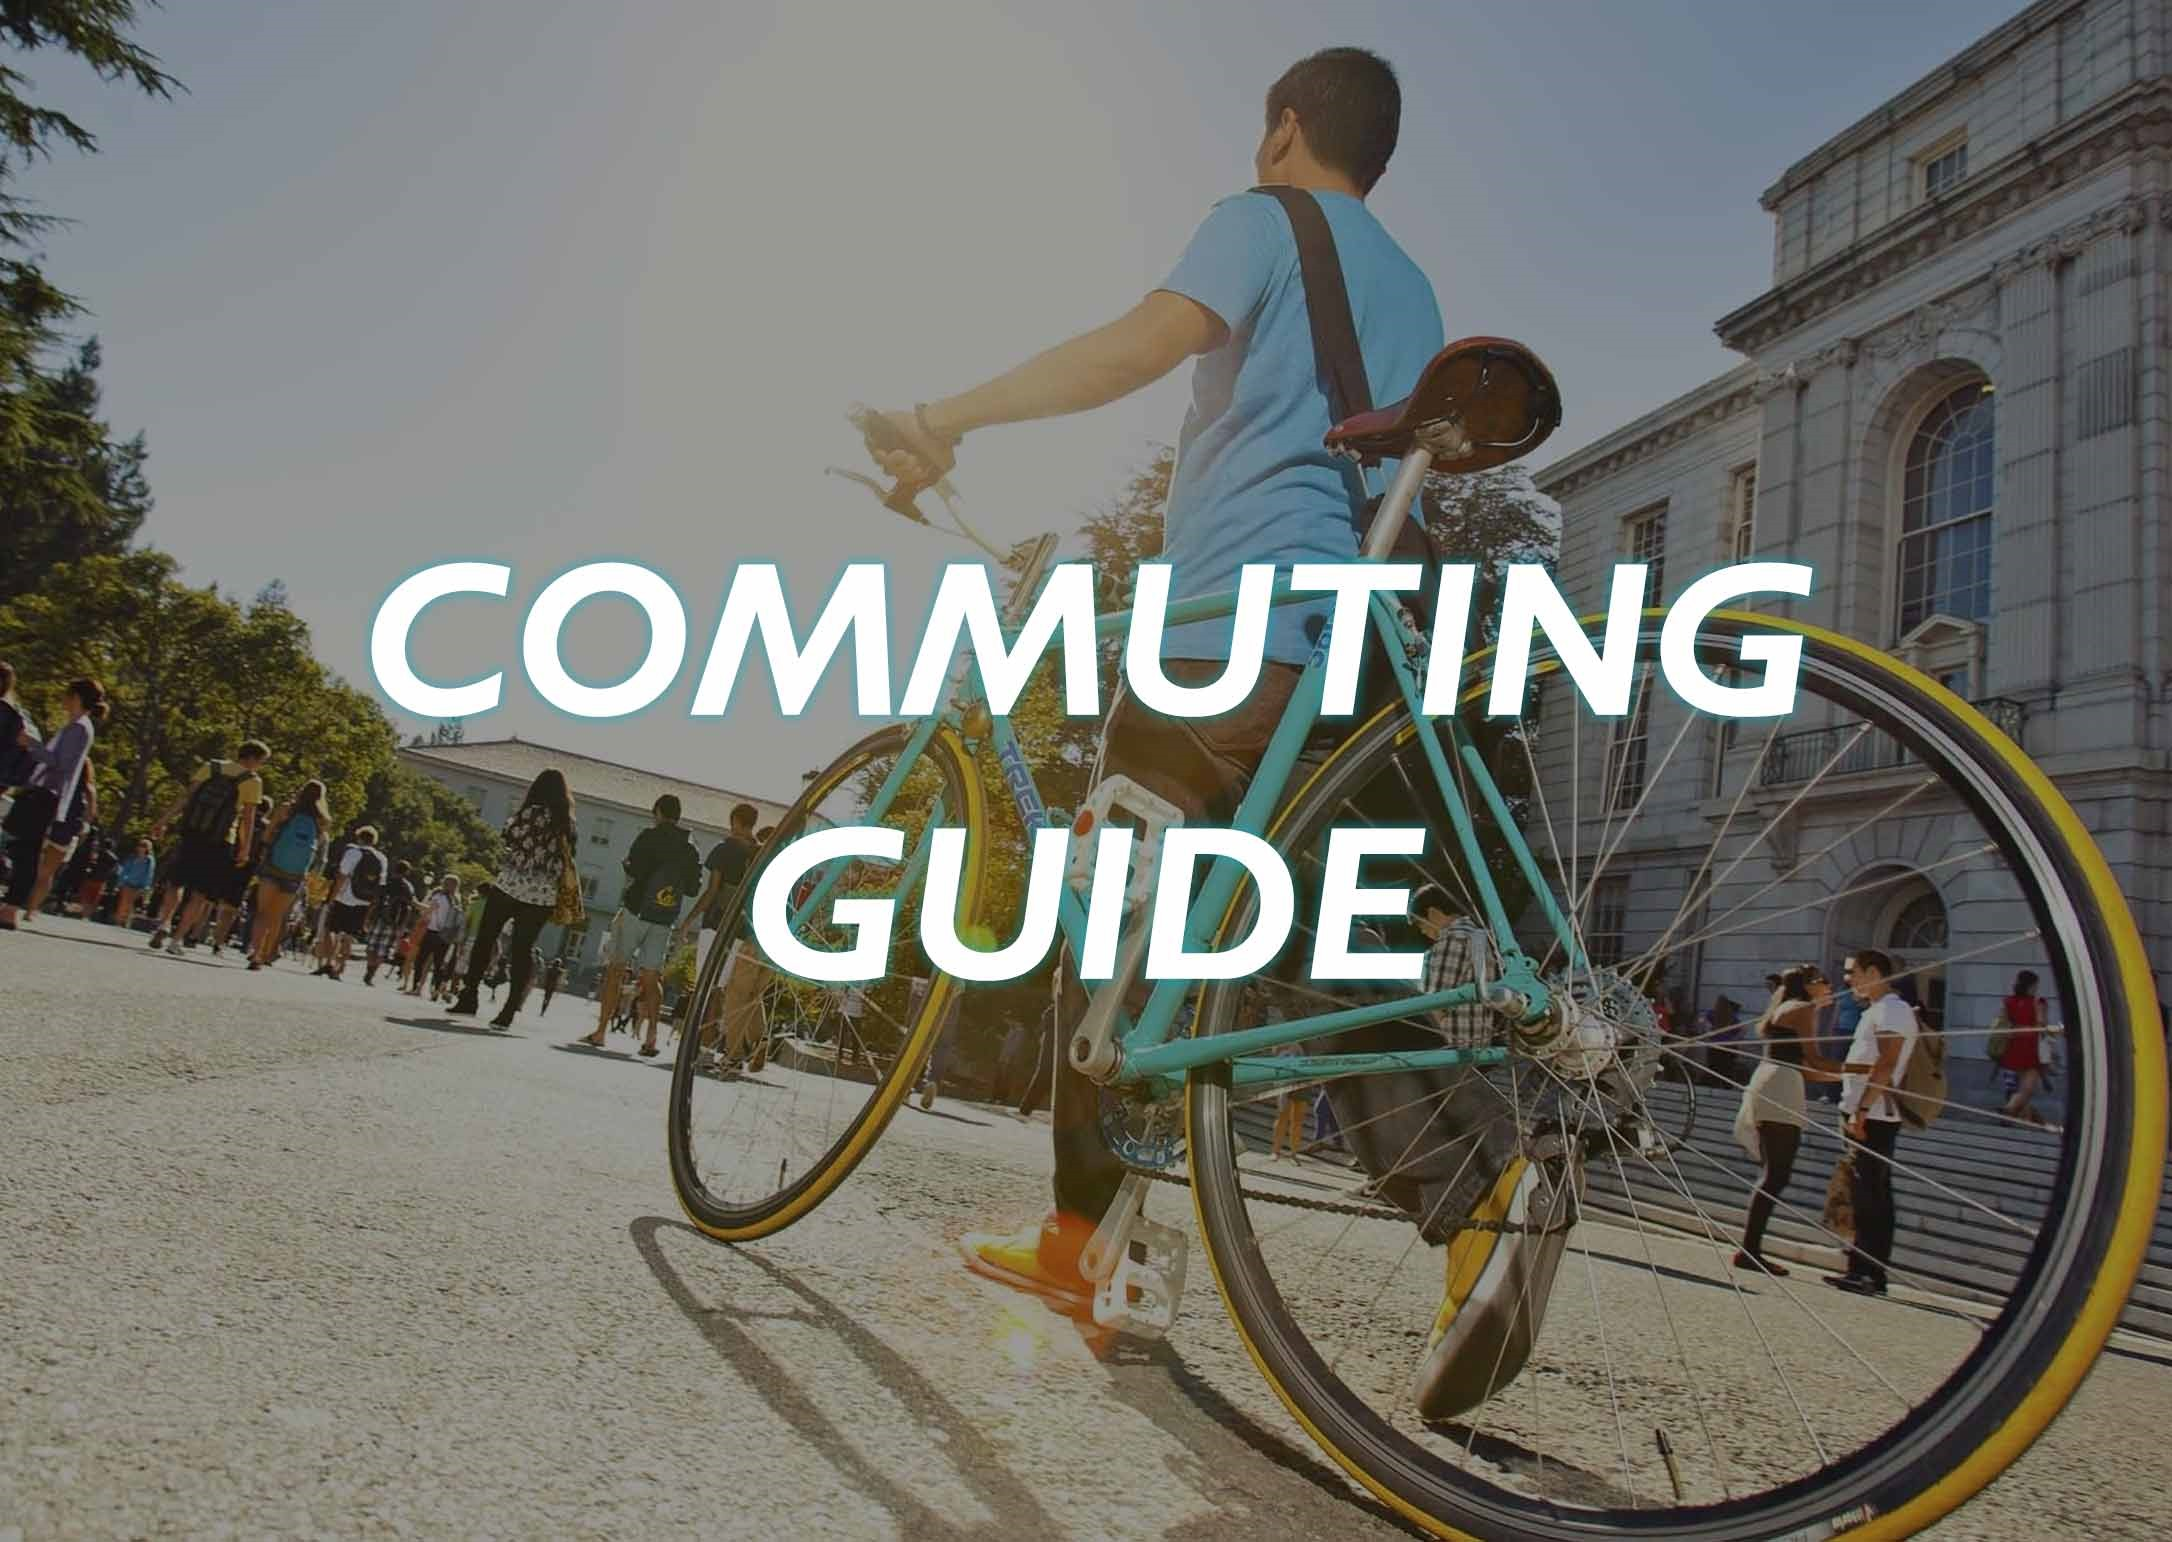 commuting-guide-tile